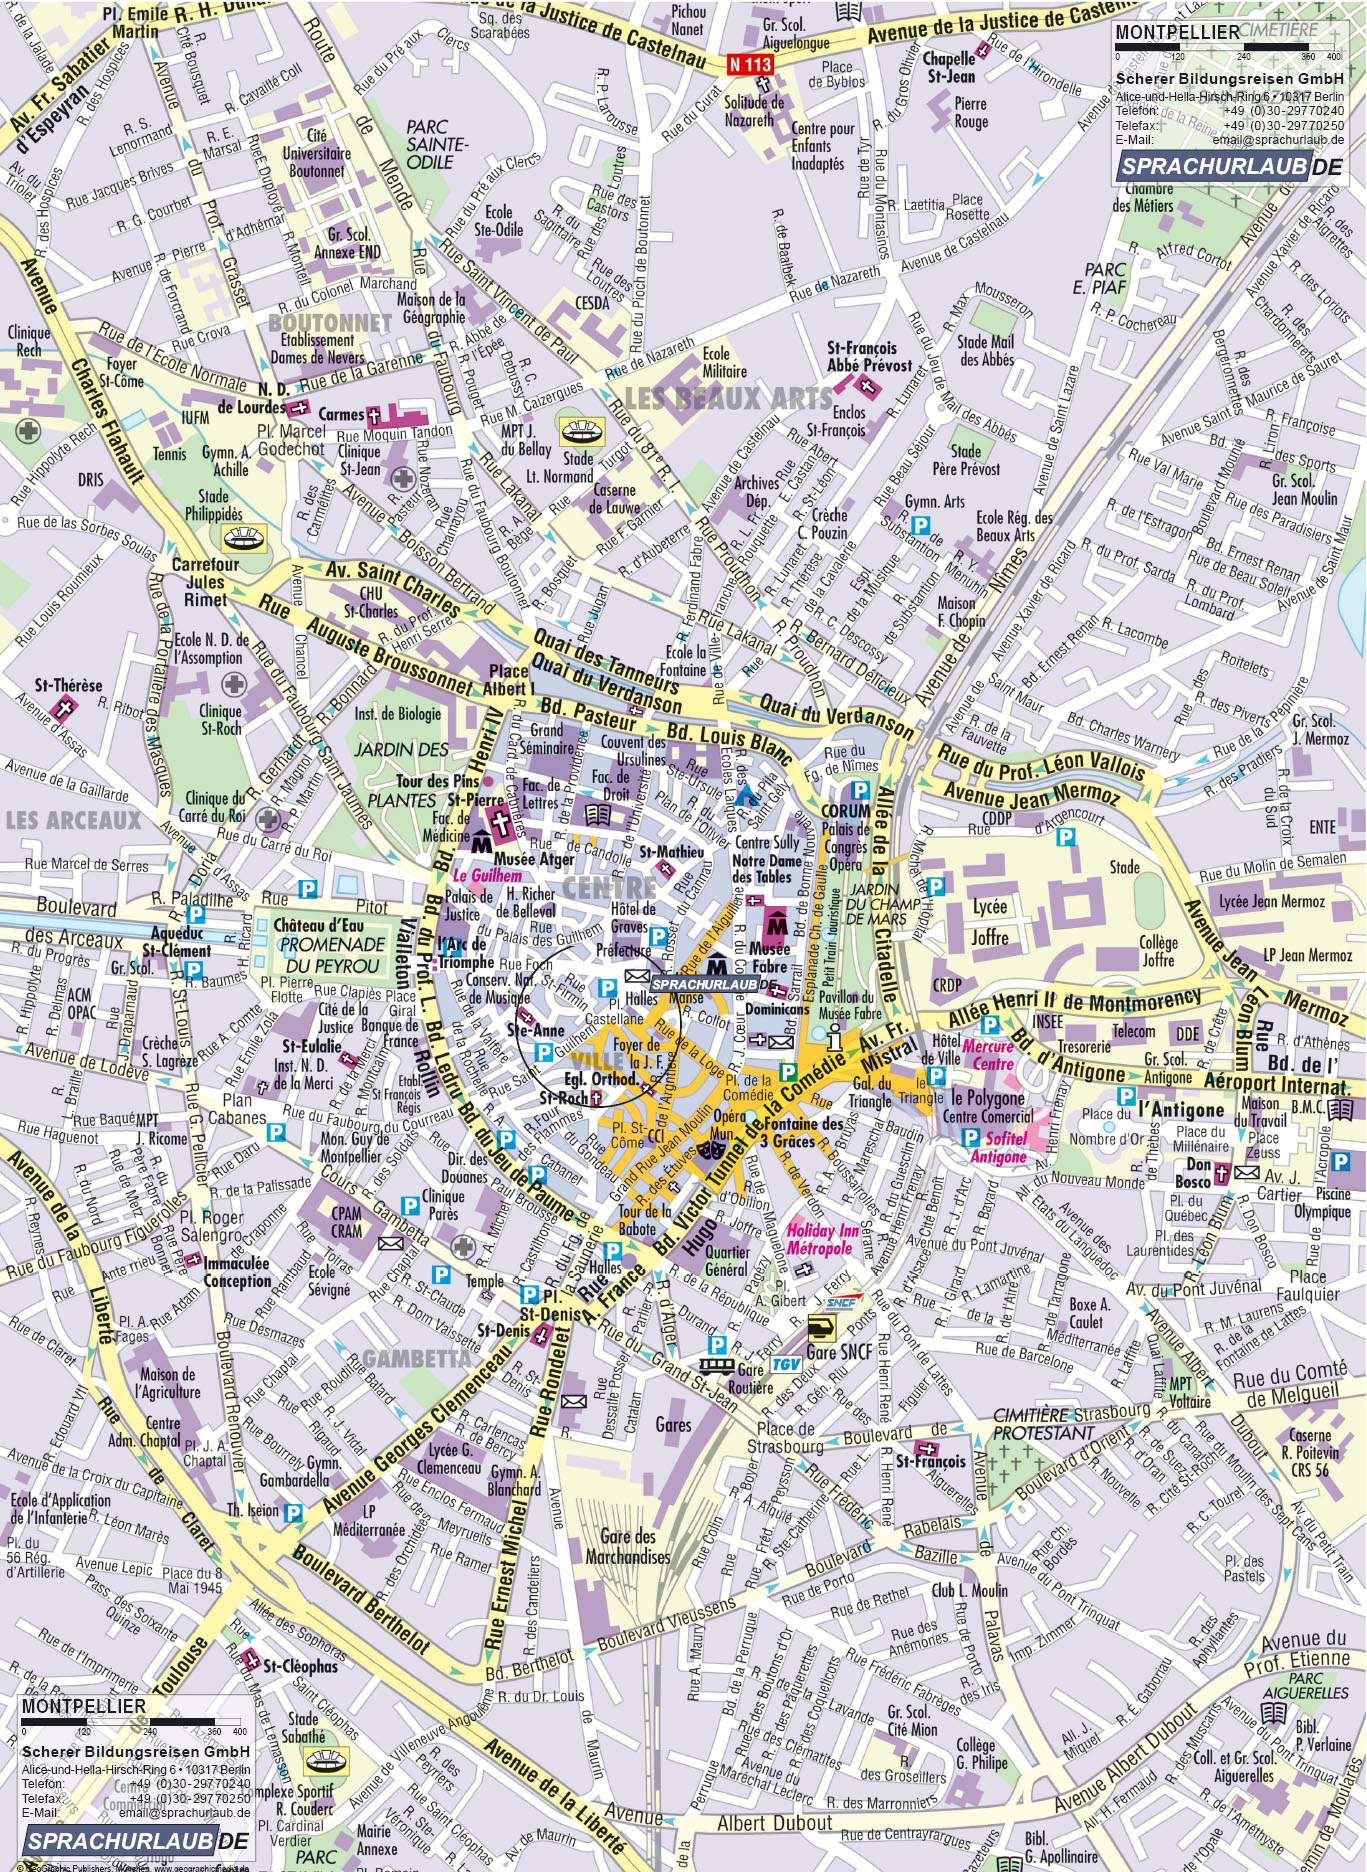 Montpellier On Map Of France.Large Montpellier Maps For Free Download And Print High Resolution